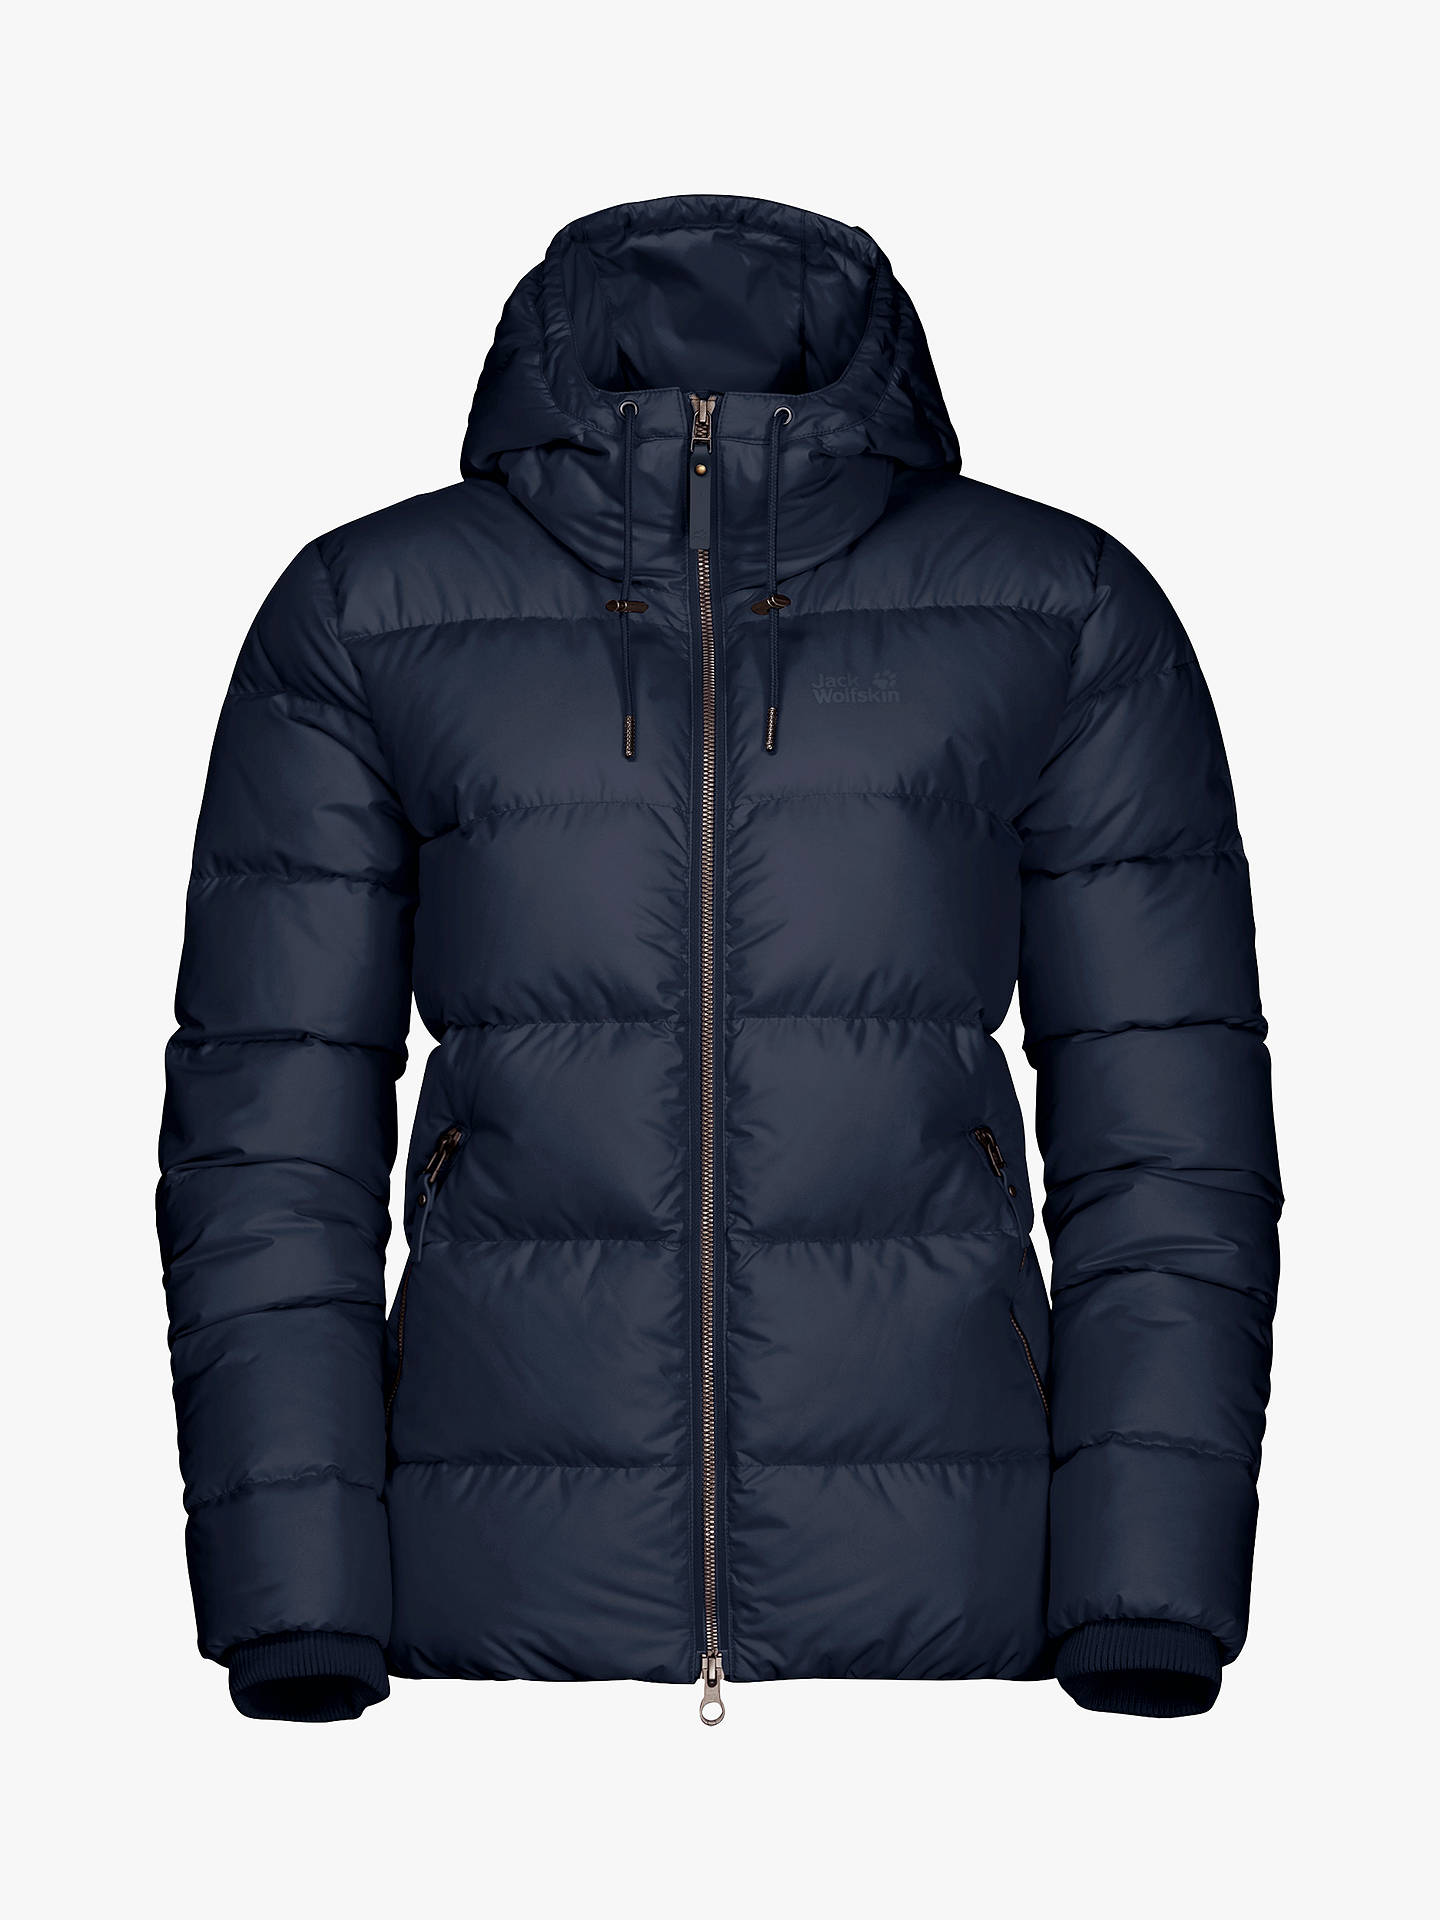 Jack Wolfskin Crystal Palace Women's Water Resistant Jacket, Midnight Blue